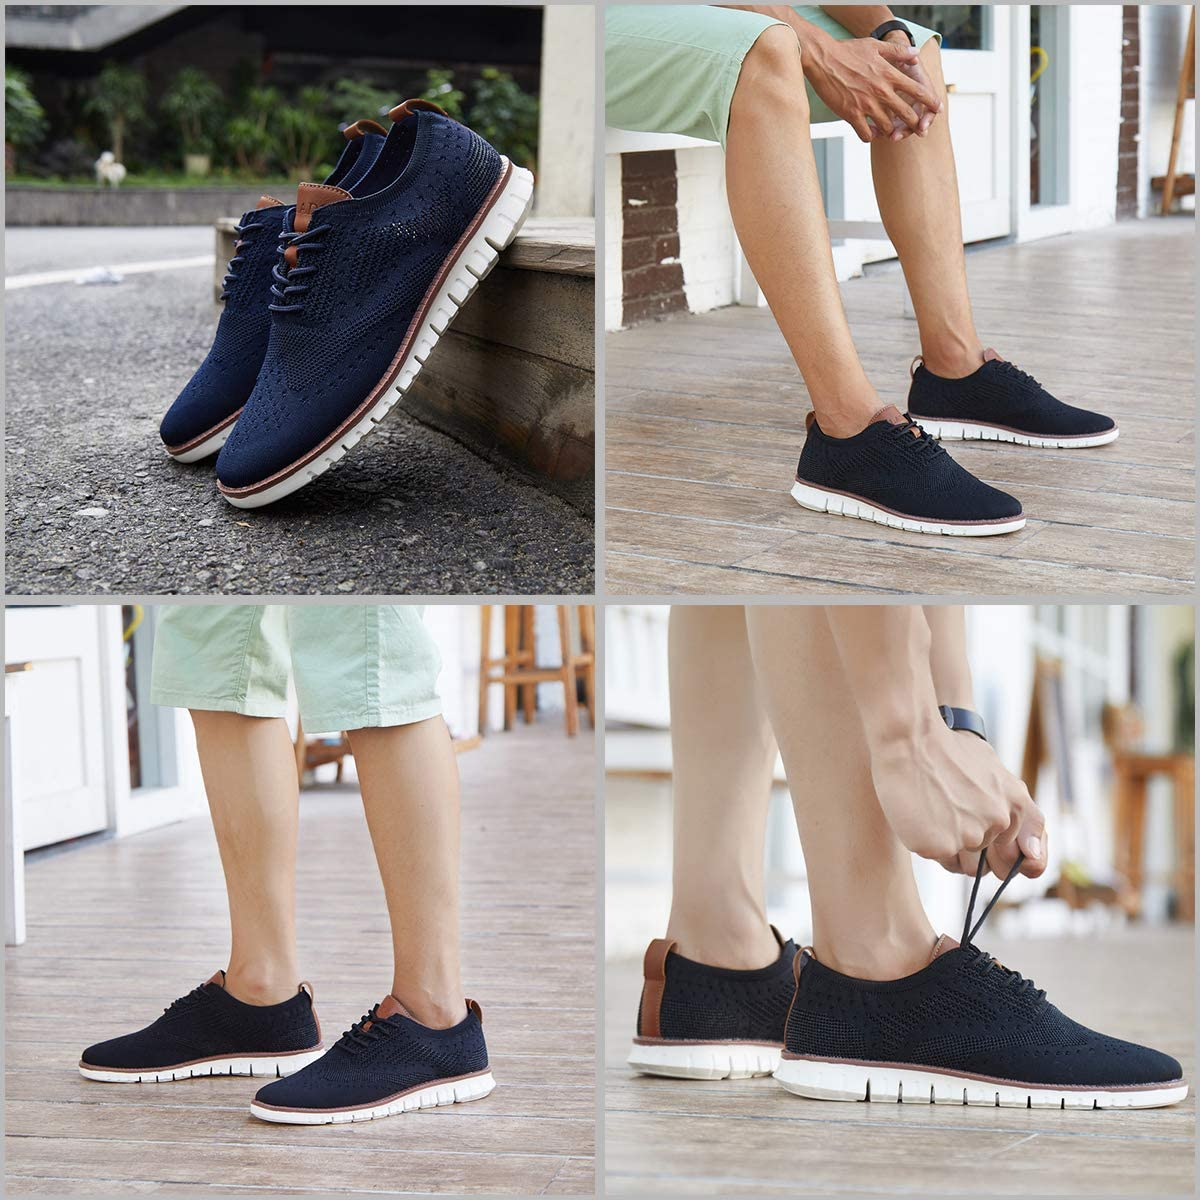 ChayChax Mens Oxford Shoes Comfort Casual Dress Shoes Breathable Wingtip Sneakers